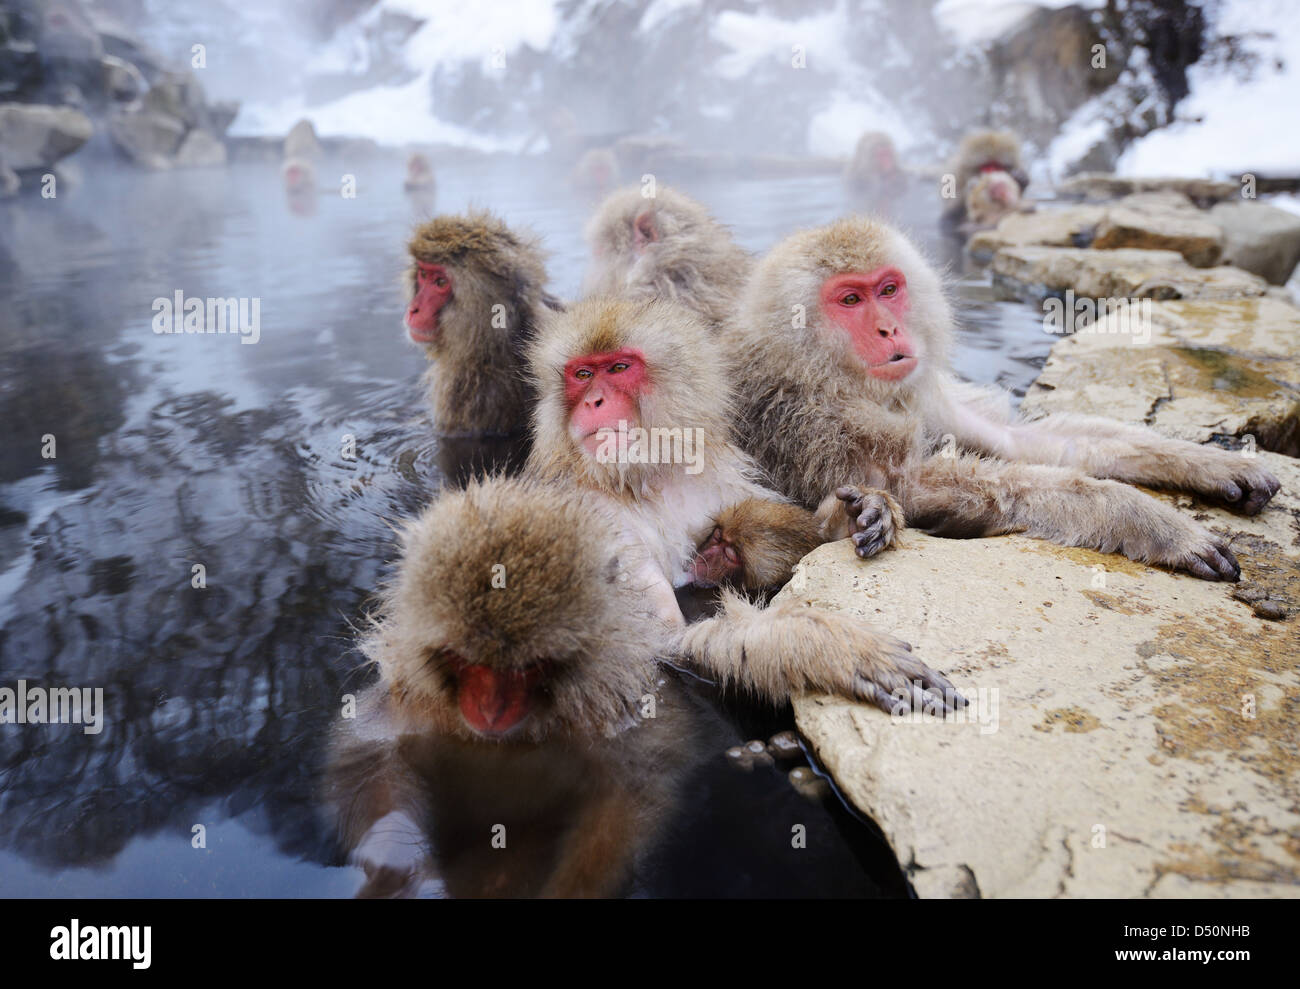 Japanese Snow Monkeys bath in hot springs in Nagano, Japan. - Stock Image